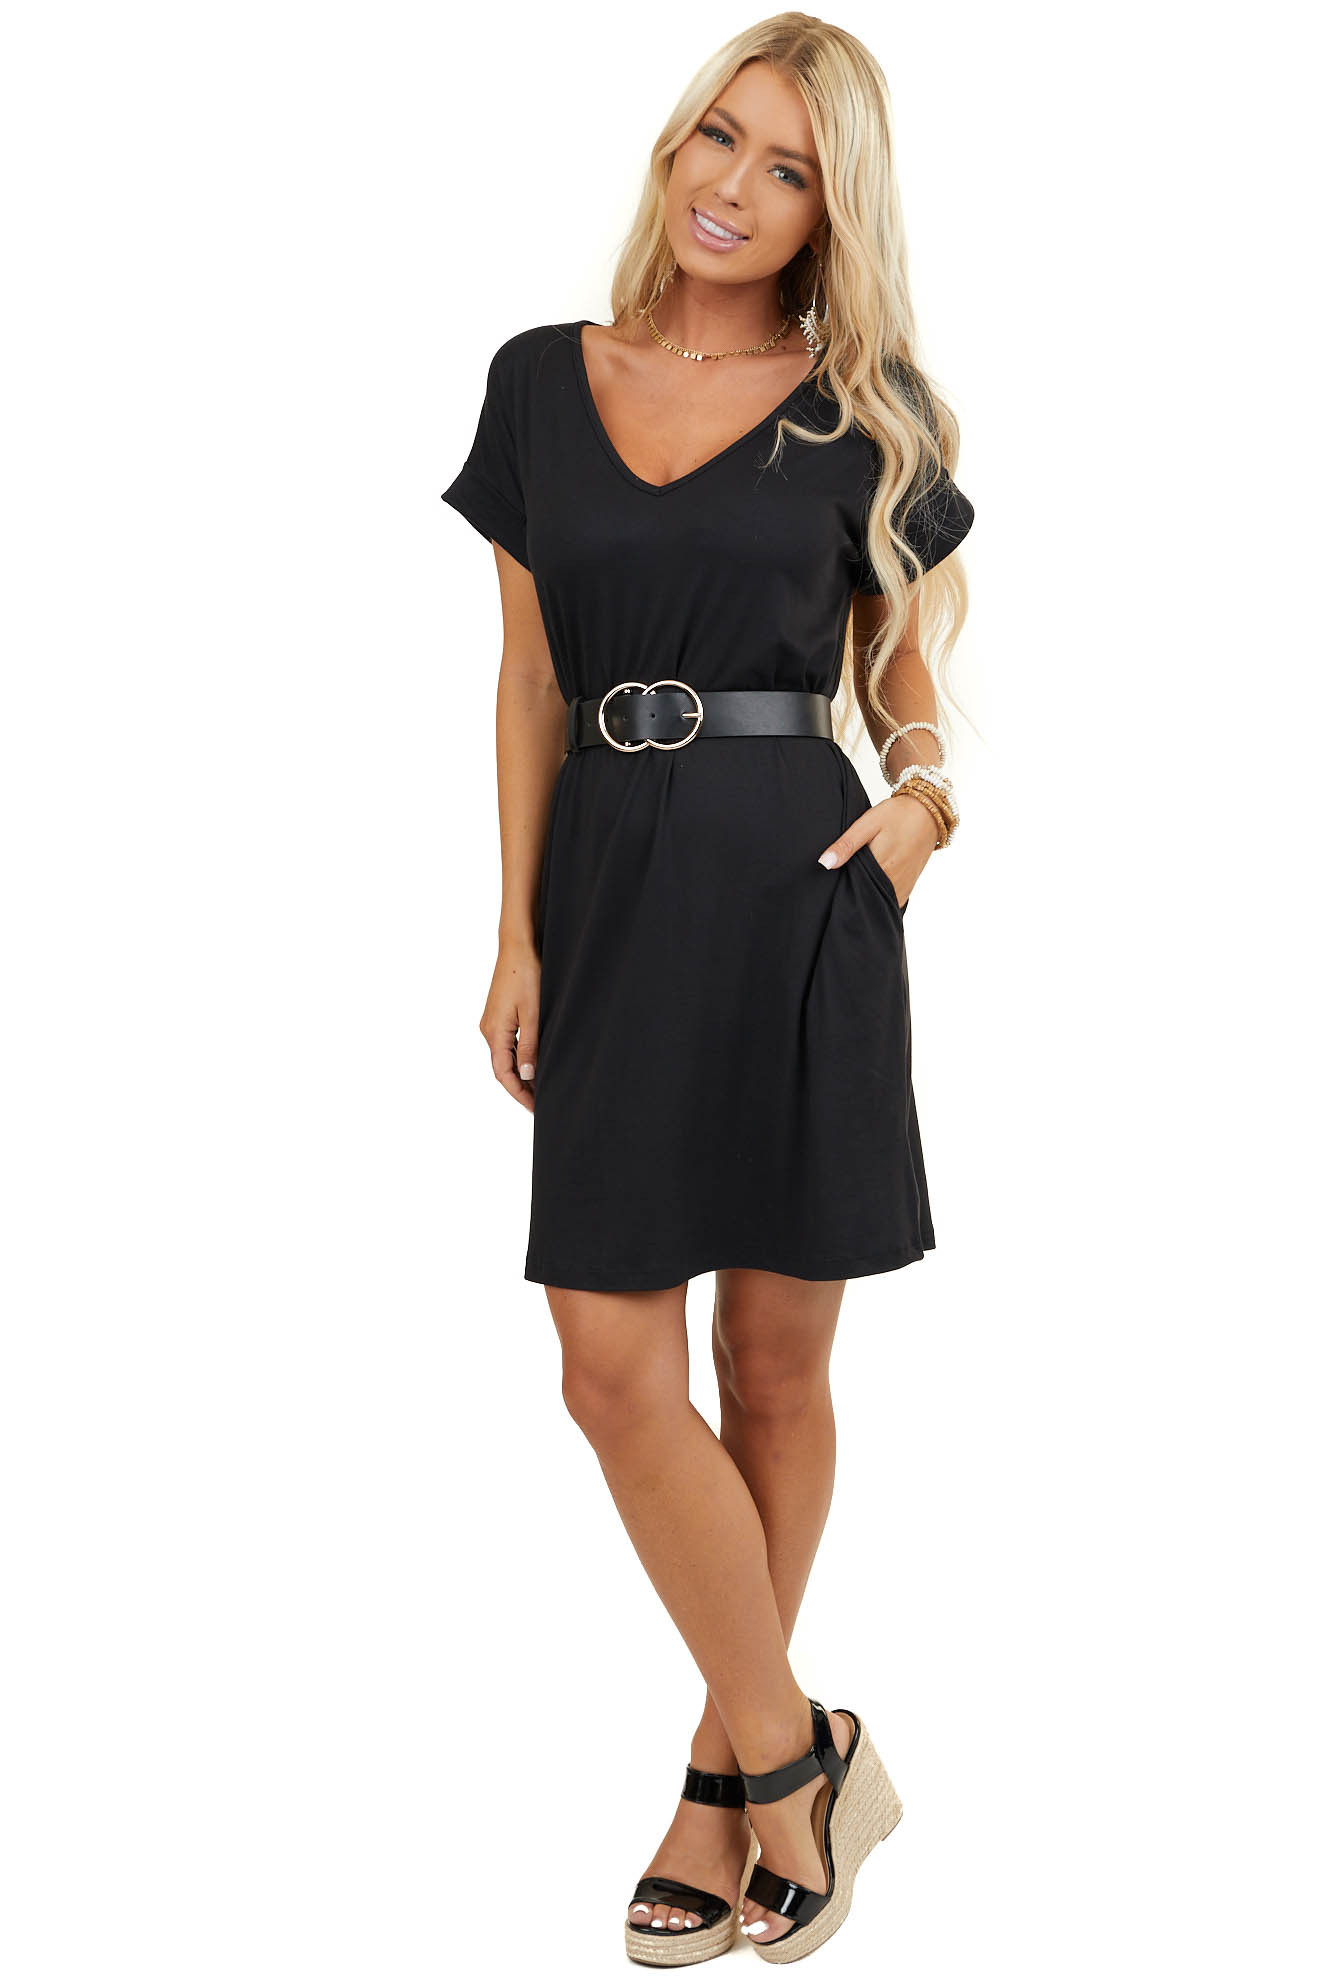 Black Super Soft Short Sleeve V Neck Mini Dress